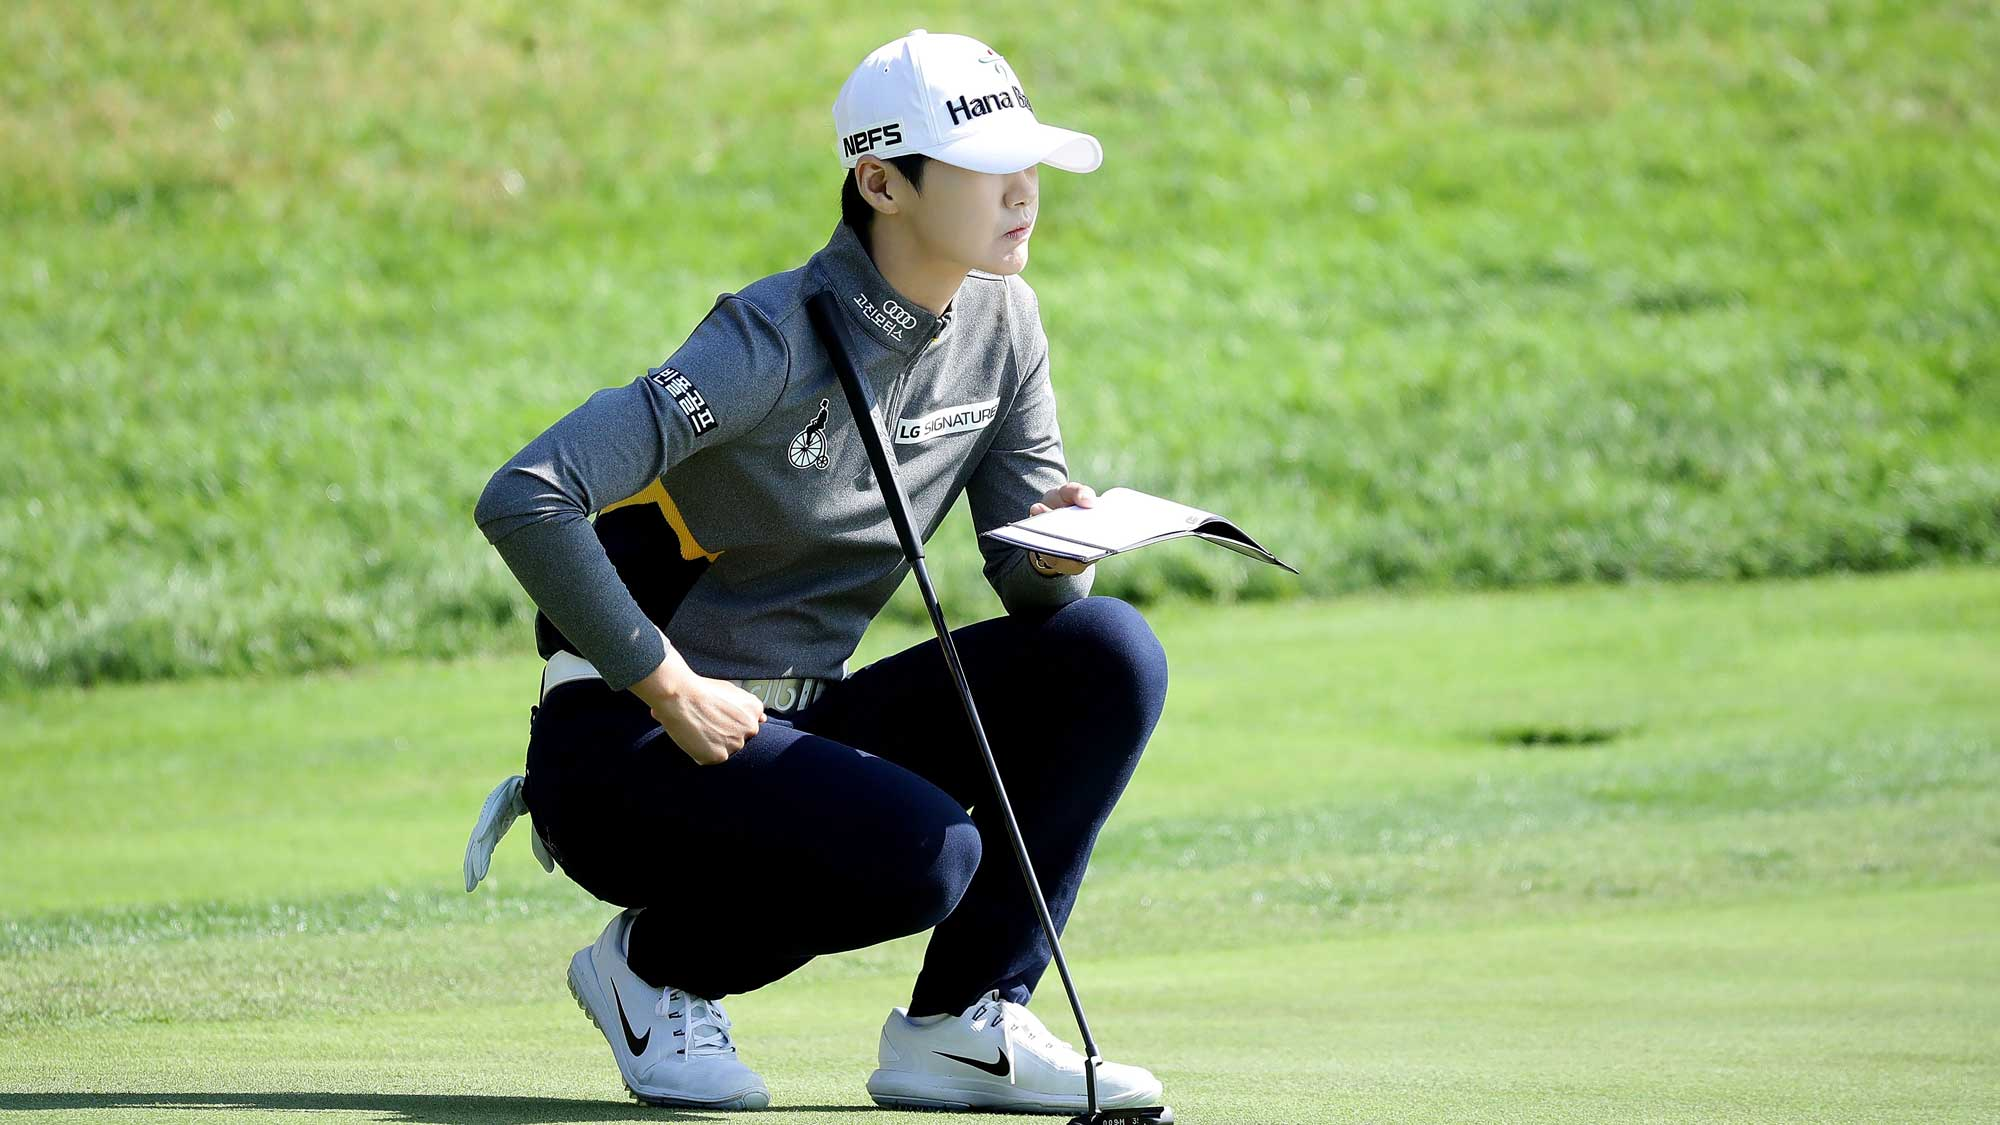 Sung-Hyun Park of South Korea on the 2nd hole during the second round of the LPGA KEB Hana Bank Championship